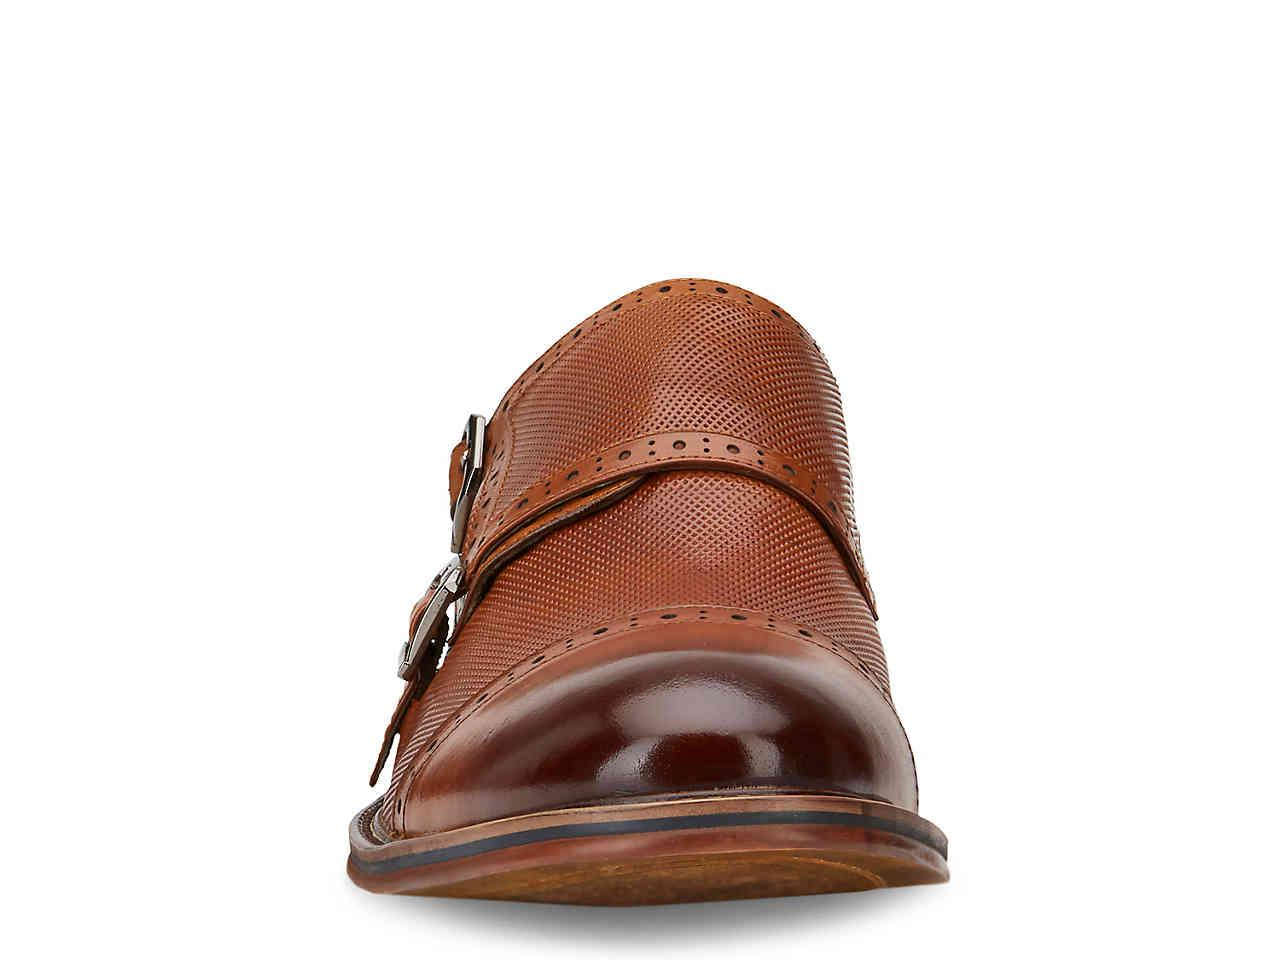 bec3ec412c9 Lyst - Vintage Foundry Co. Zorba Monk Strap Slip-on in Brown for Men